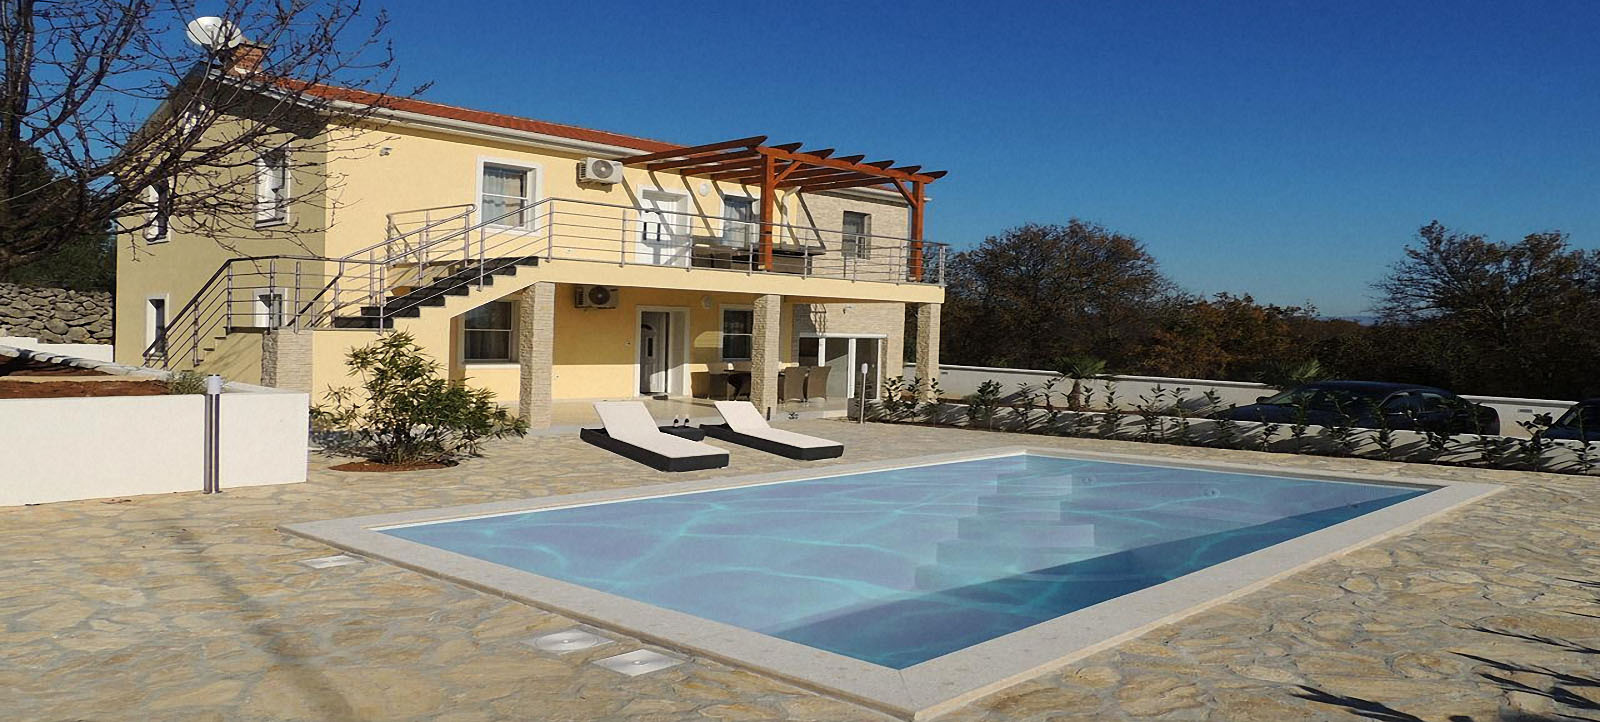 35940  - Krk - Holiday houses, villas Croatia